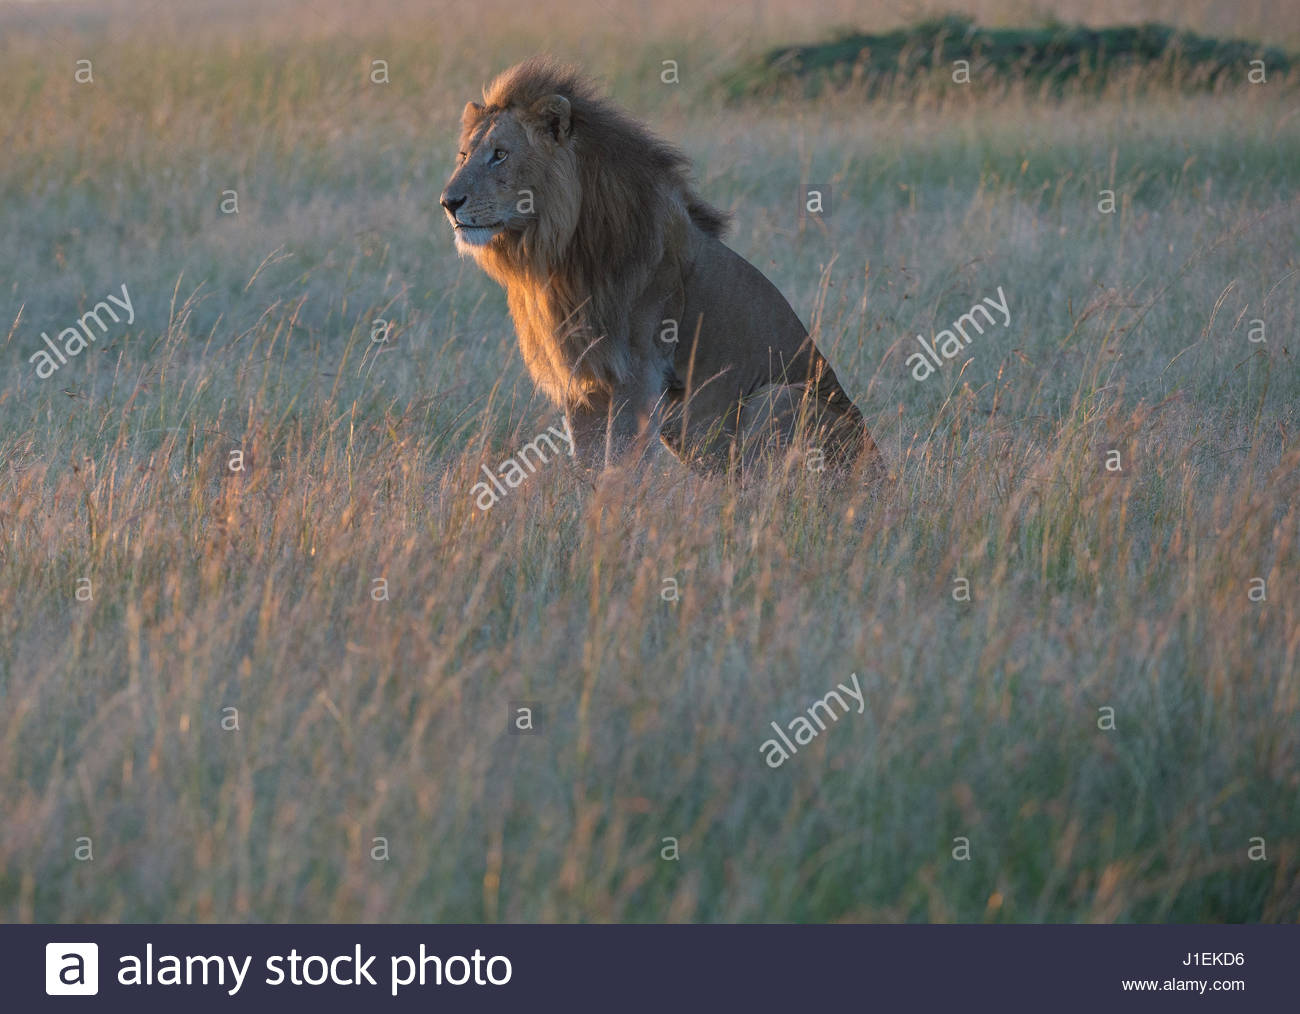 Sunlight on a male lion, Panthera leo, sitting in the dry grass. - Stock Image